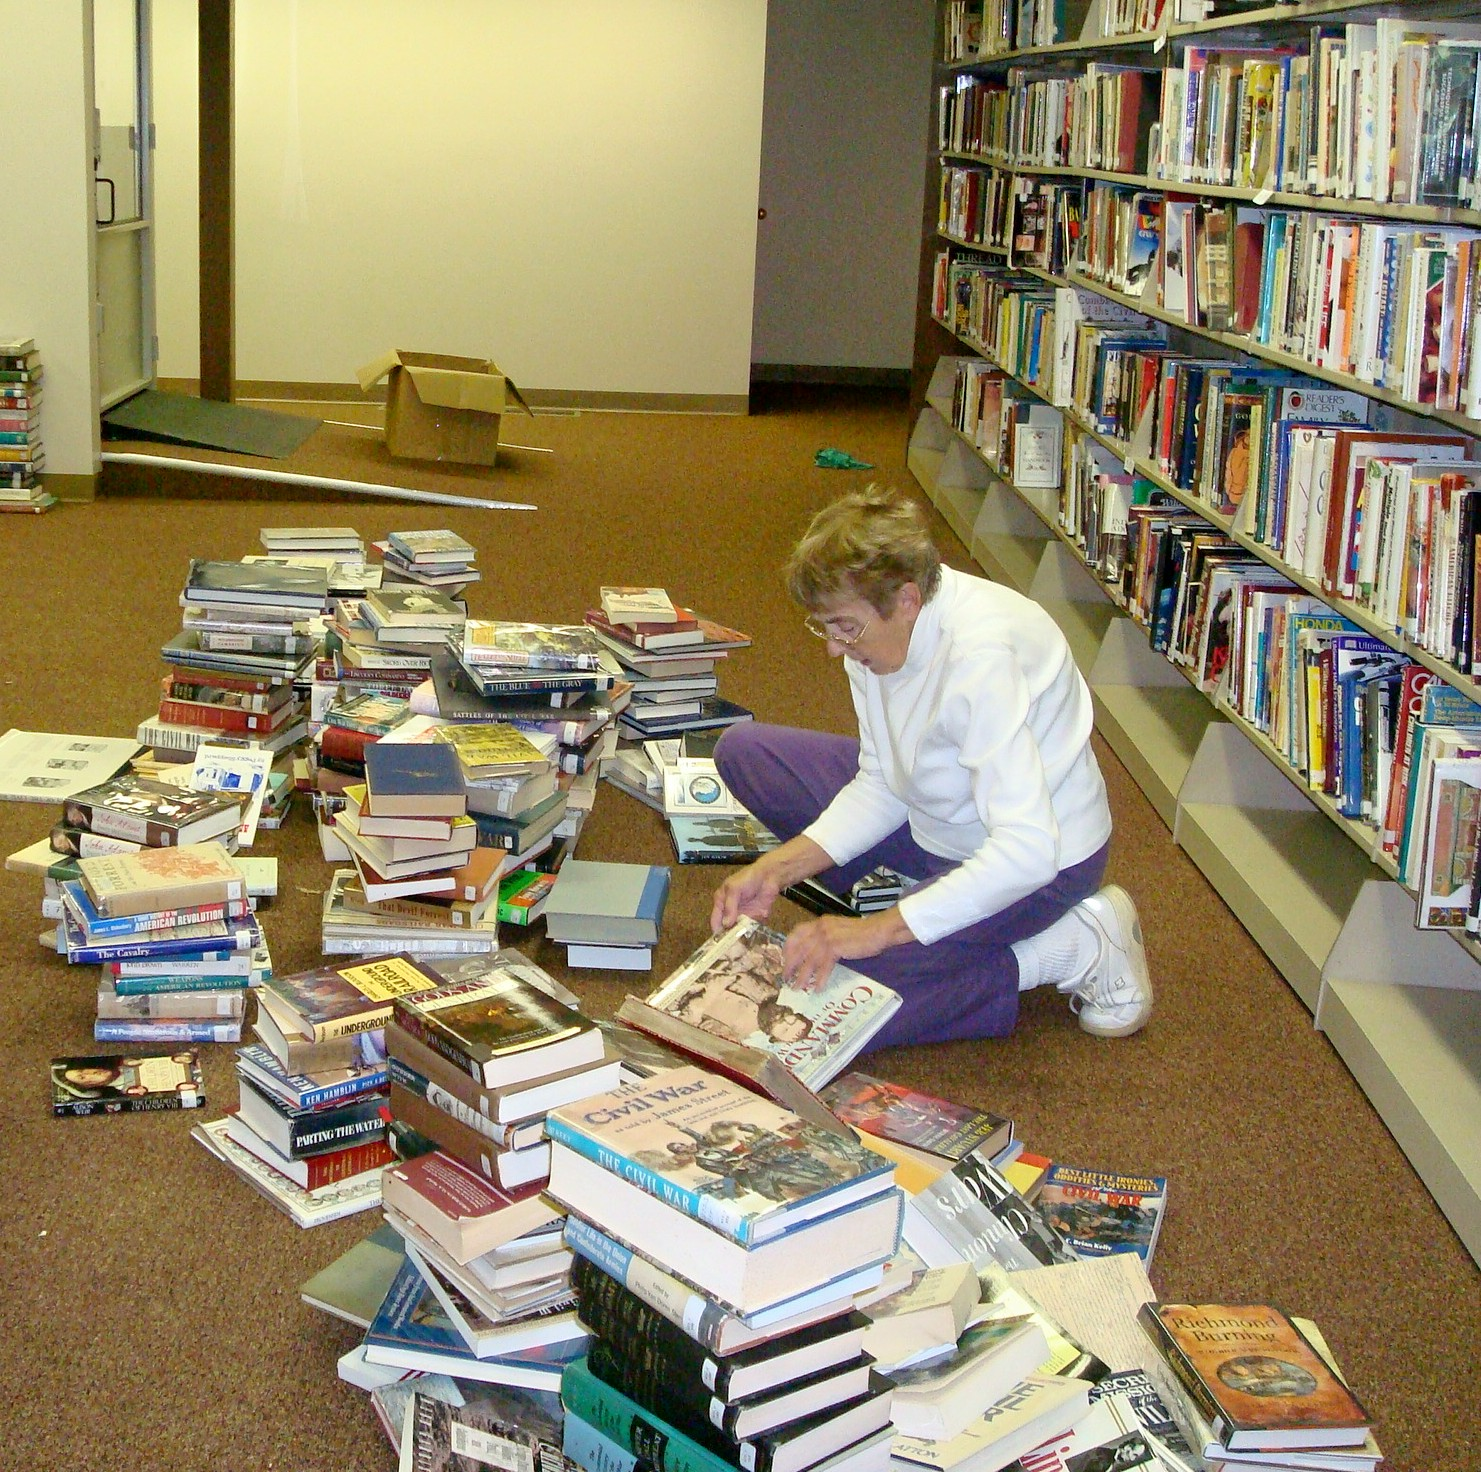 Mrs. Doris Turner sorting thru  library books preparing for reopening of library